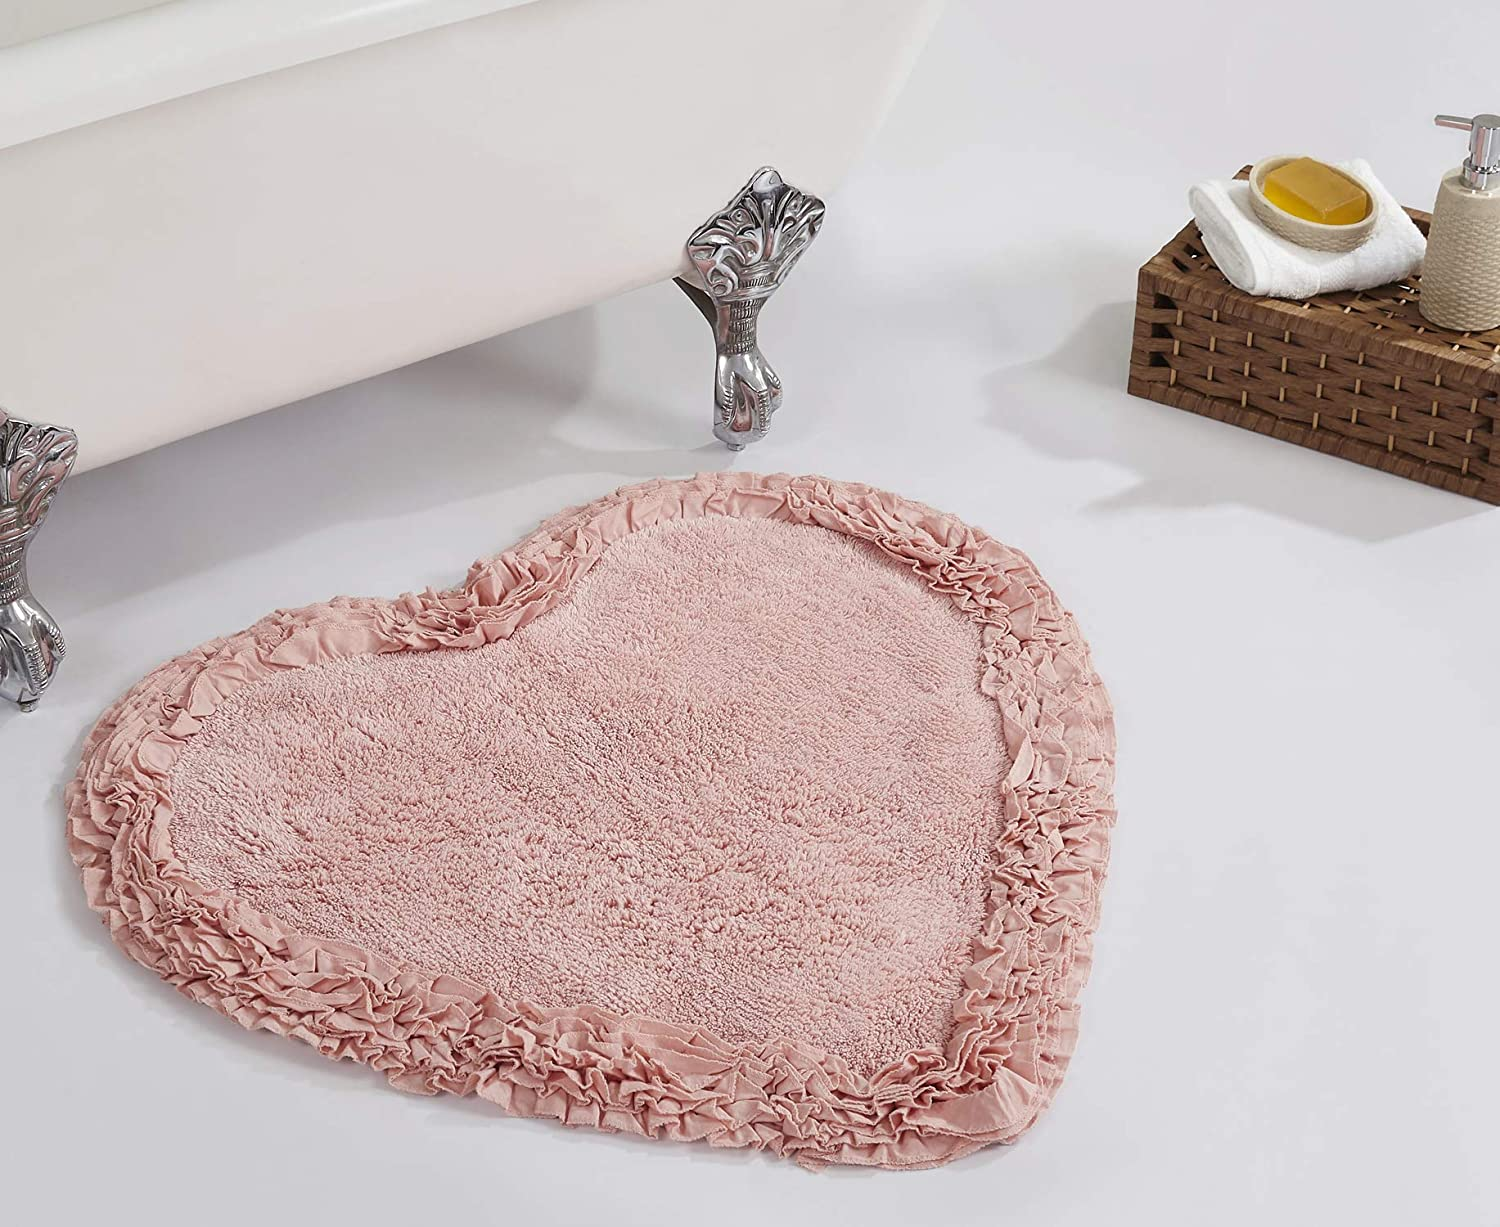 "Better Trends Shaggy Border Collection is Ultra Soft, Plush and Absorbent Tufted Bath Mat Rug 100% Cotton in Vibrant Colors, 30"" Heart, Pink"